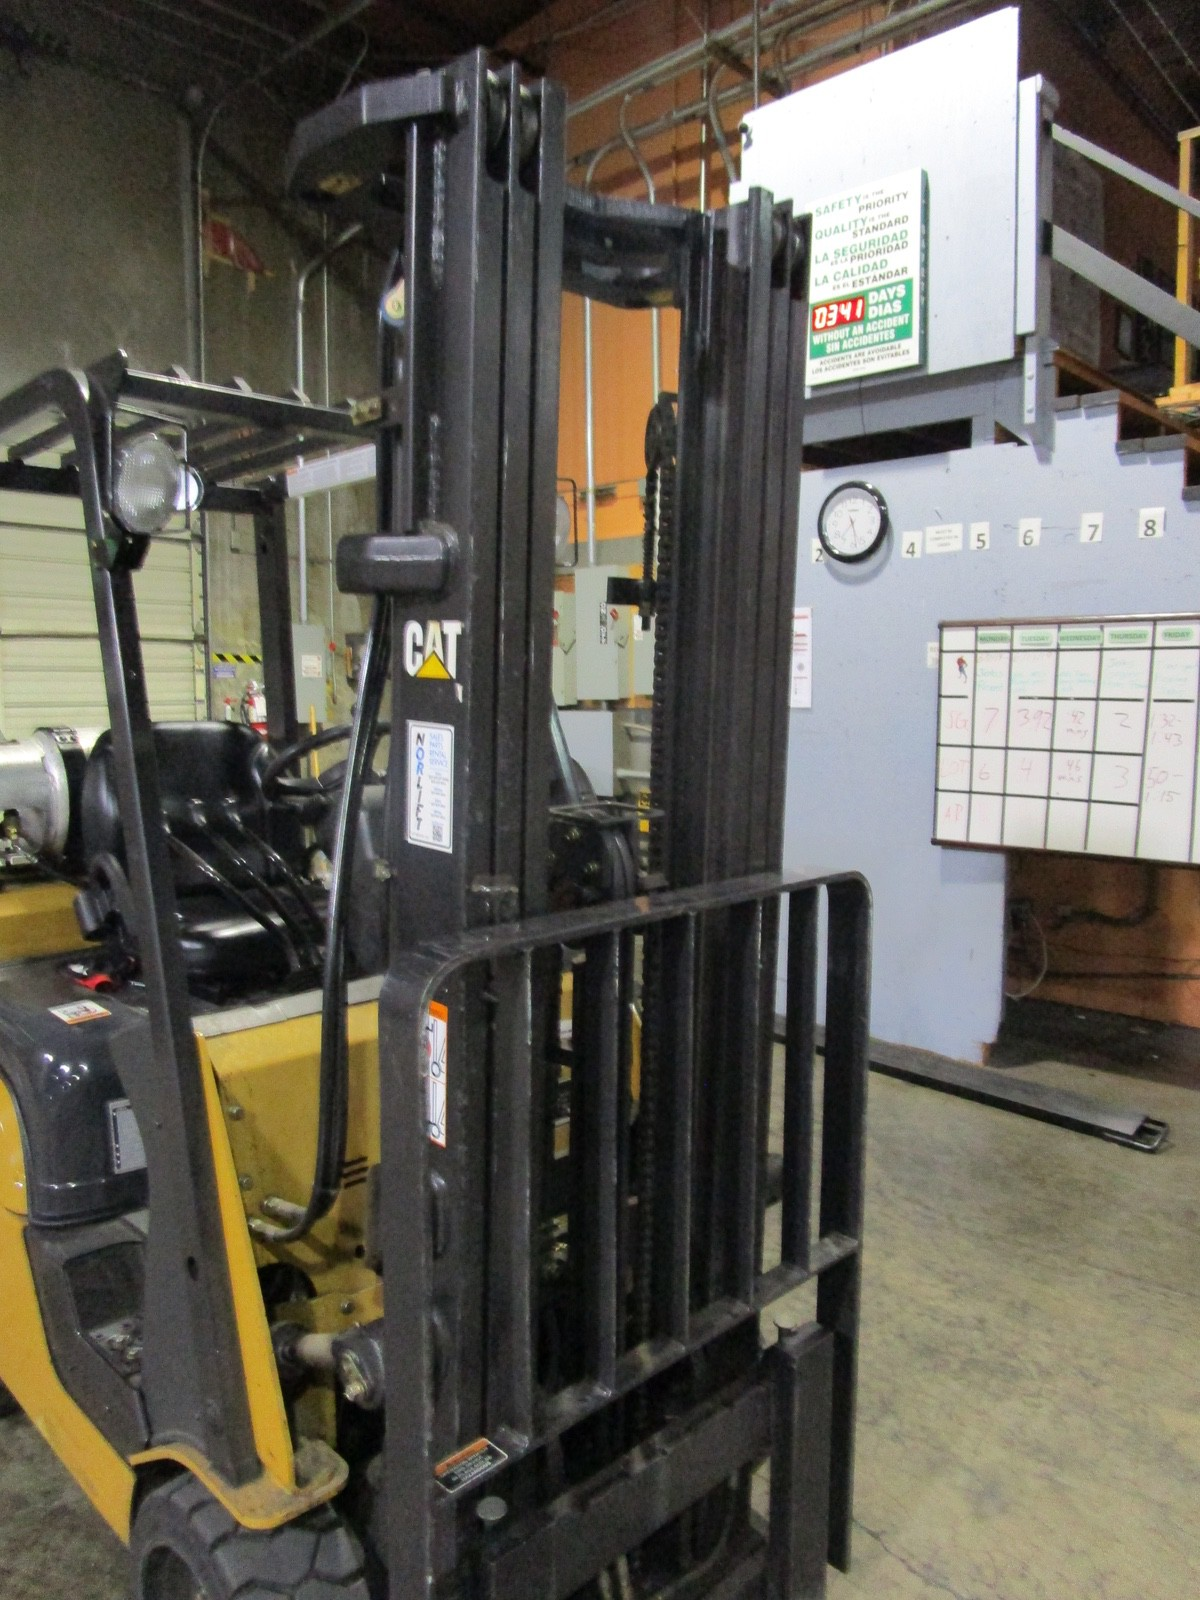 Cat CC4000 LPG Forklift s/n AT81F50079 (Delivery - 4/3/20), 1700 Hours, 3,125 #, 200 | Rig Fee: $100 - Image 6 of 7